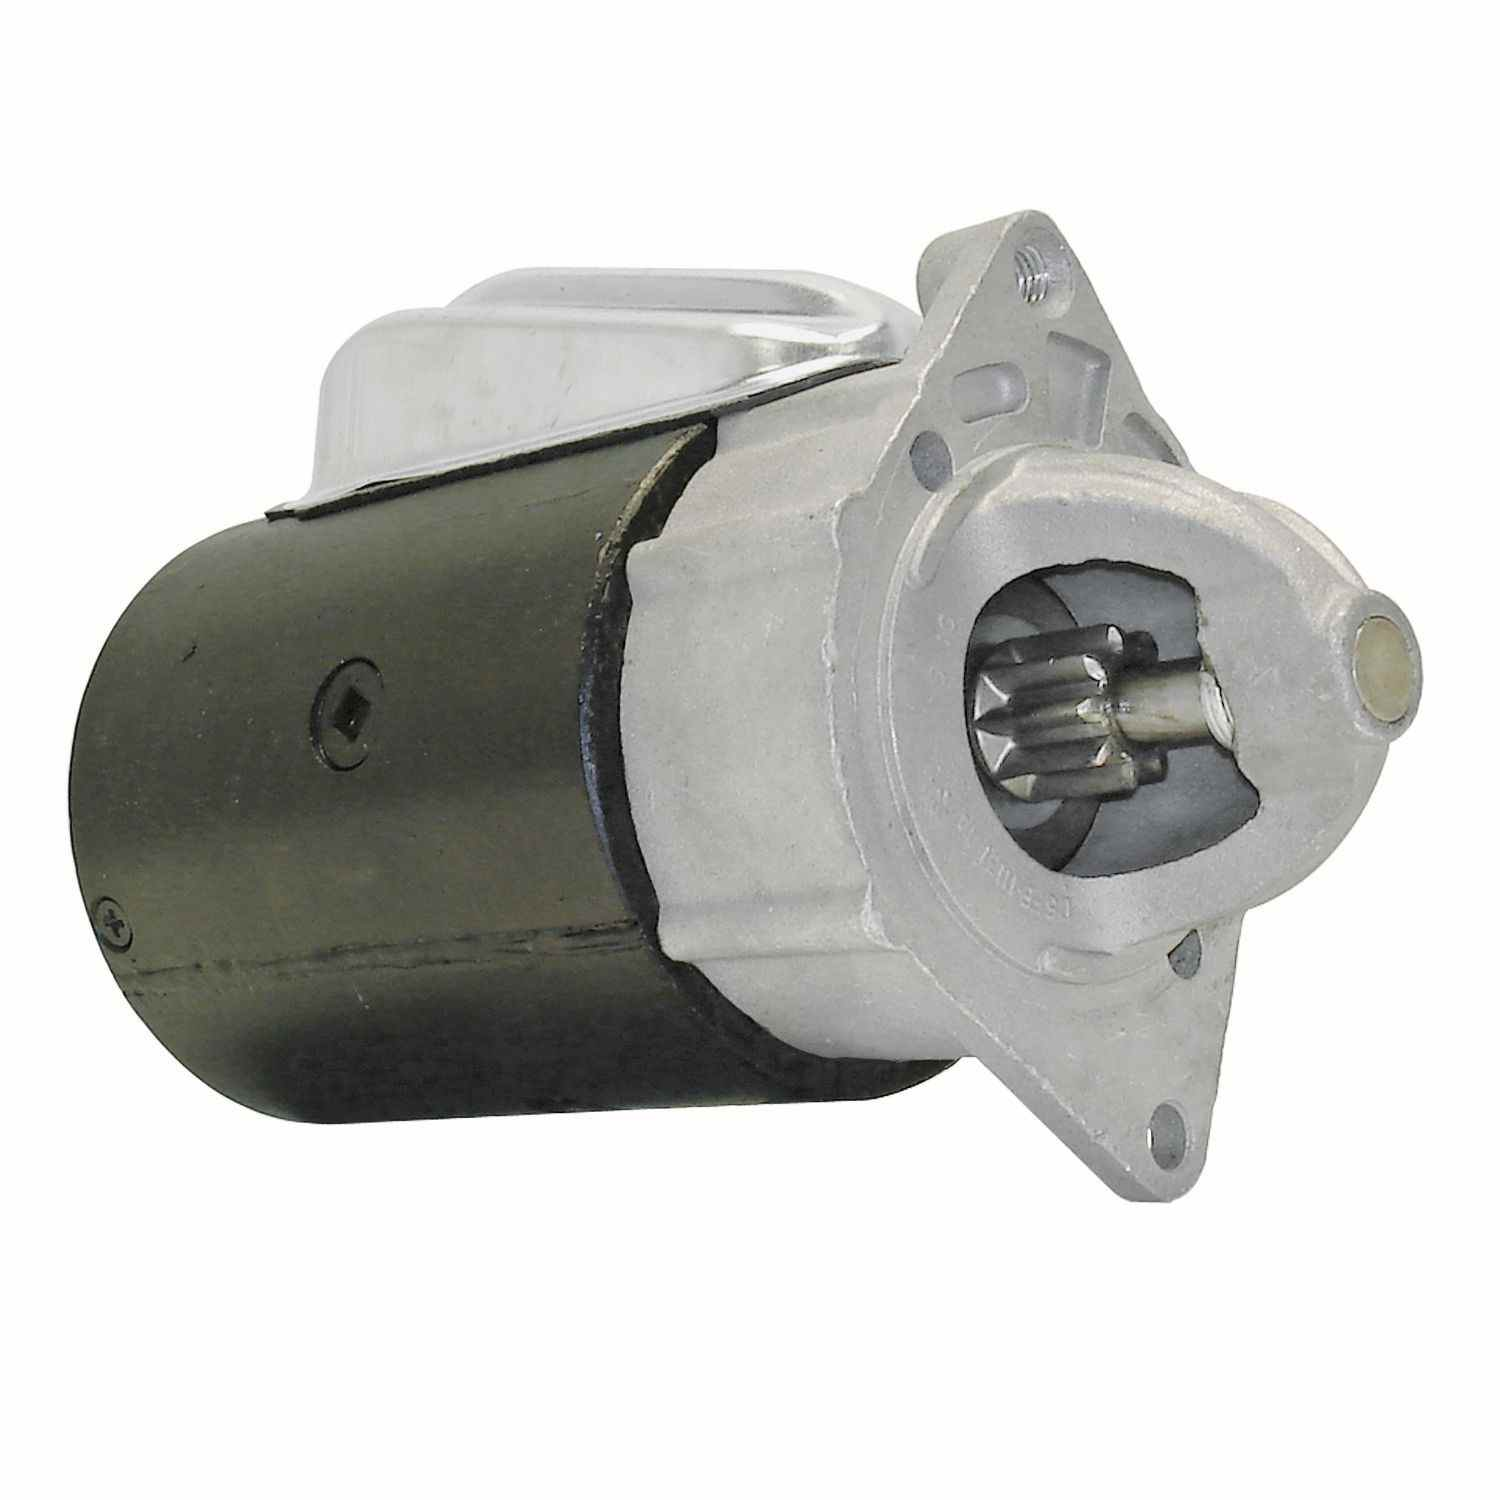 ACDELCO GOLD/PROFESSIONAL - Reman Starter Motor - DCC 336-1039